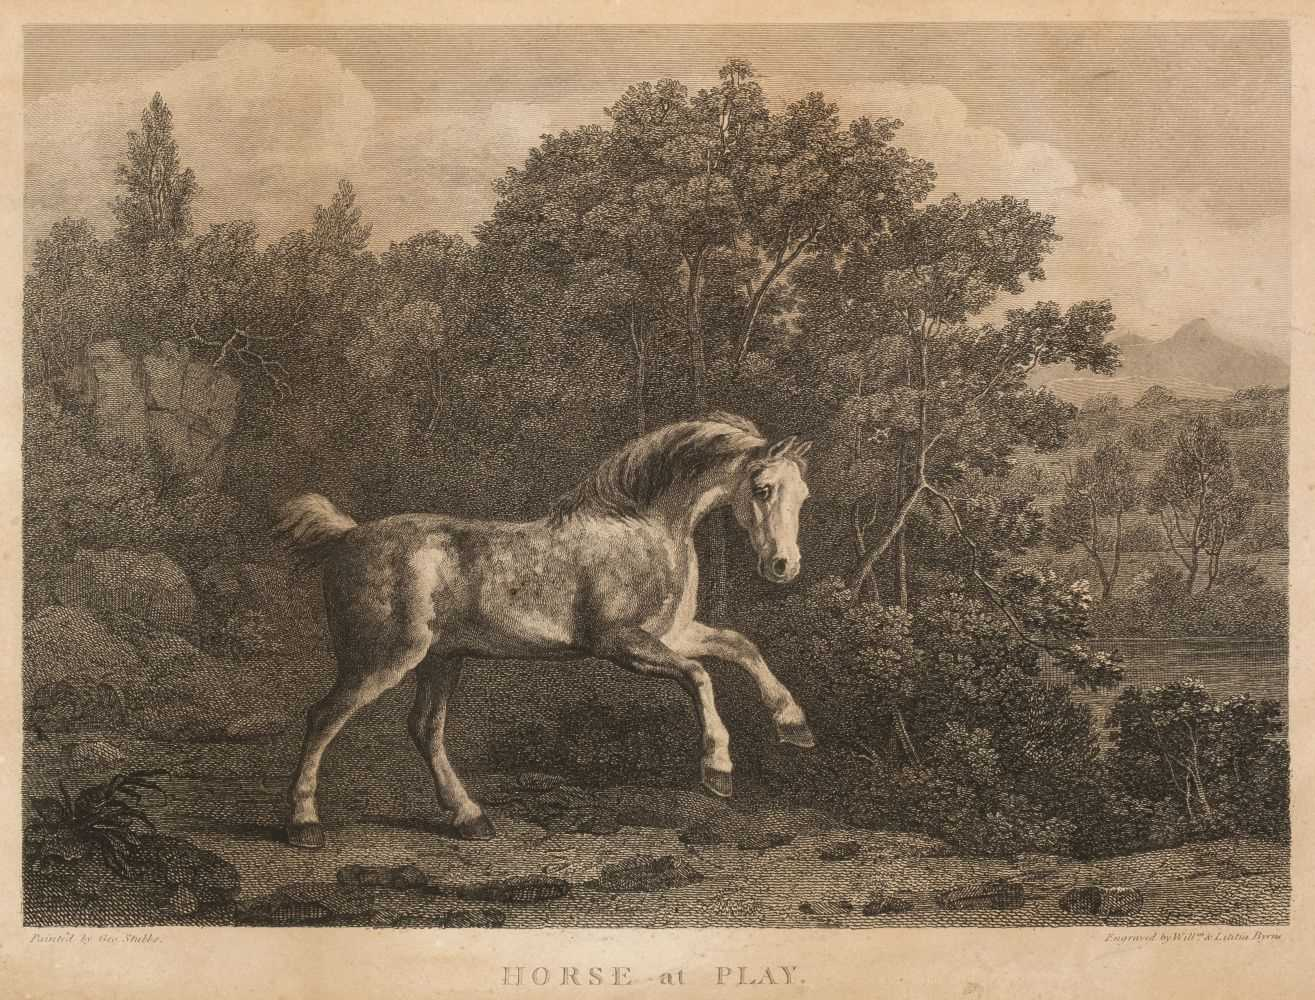 Lot 319 - Stubbs (George, 1724-1806). Horse at Play, by W. Byrne, 1795